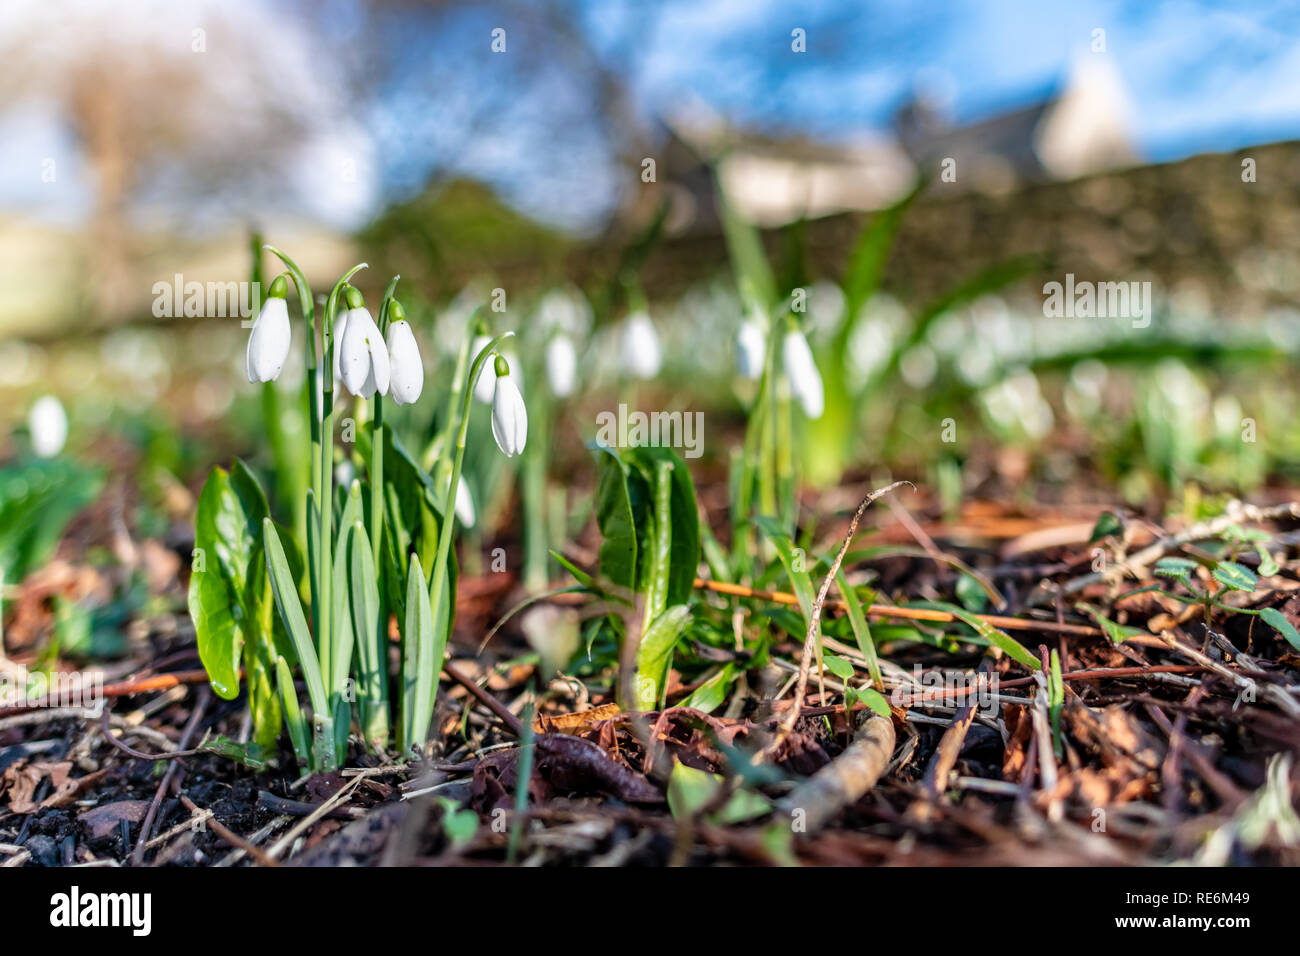 Wareham, UK. Sunday 20th January 2019. Snowdrop flowers come out unusually early on a sunny day in the middle of January 2019. Credit: Thomas Faull/Alamy Live News Stock Photo